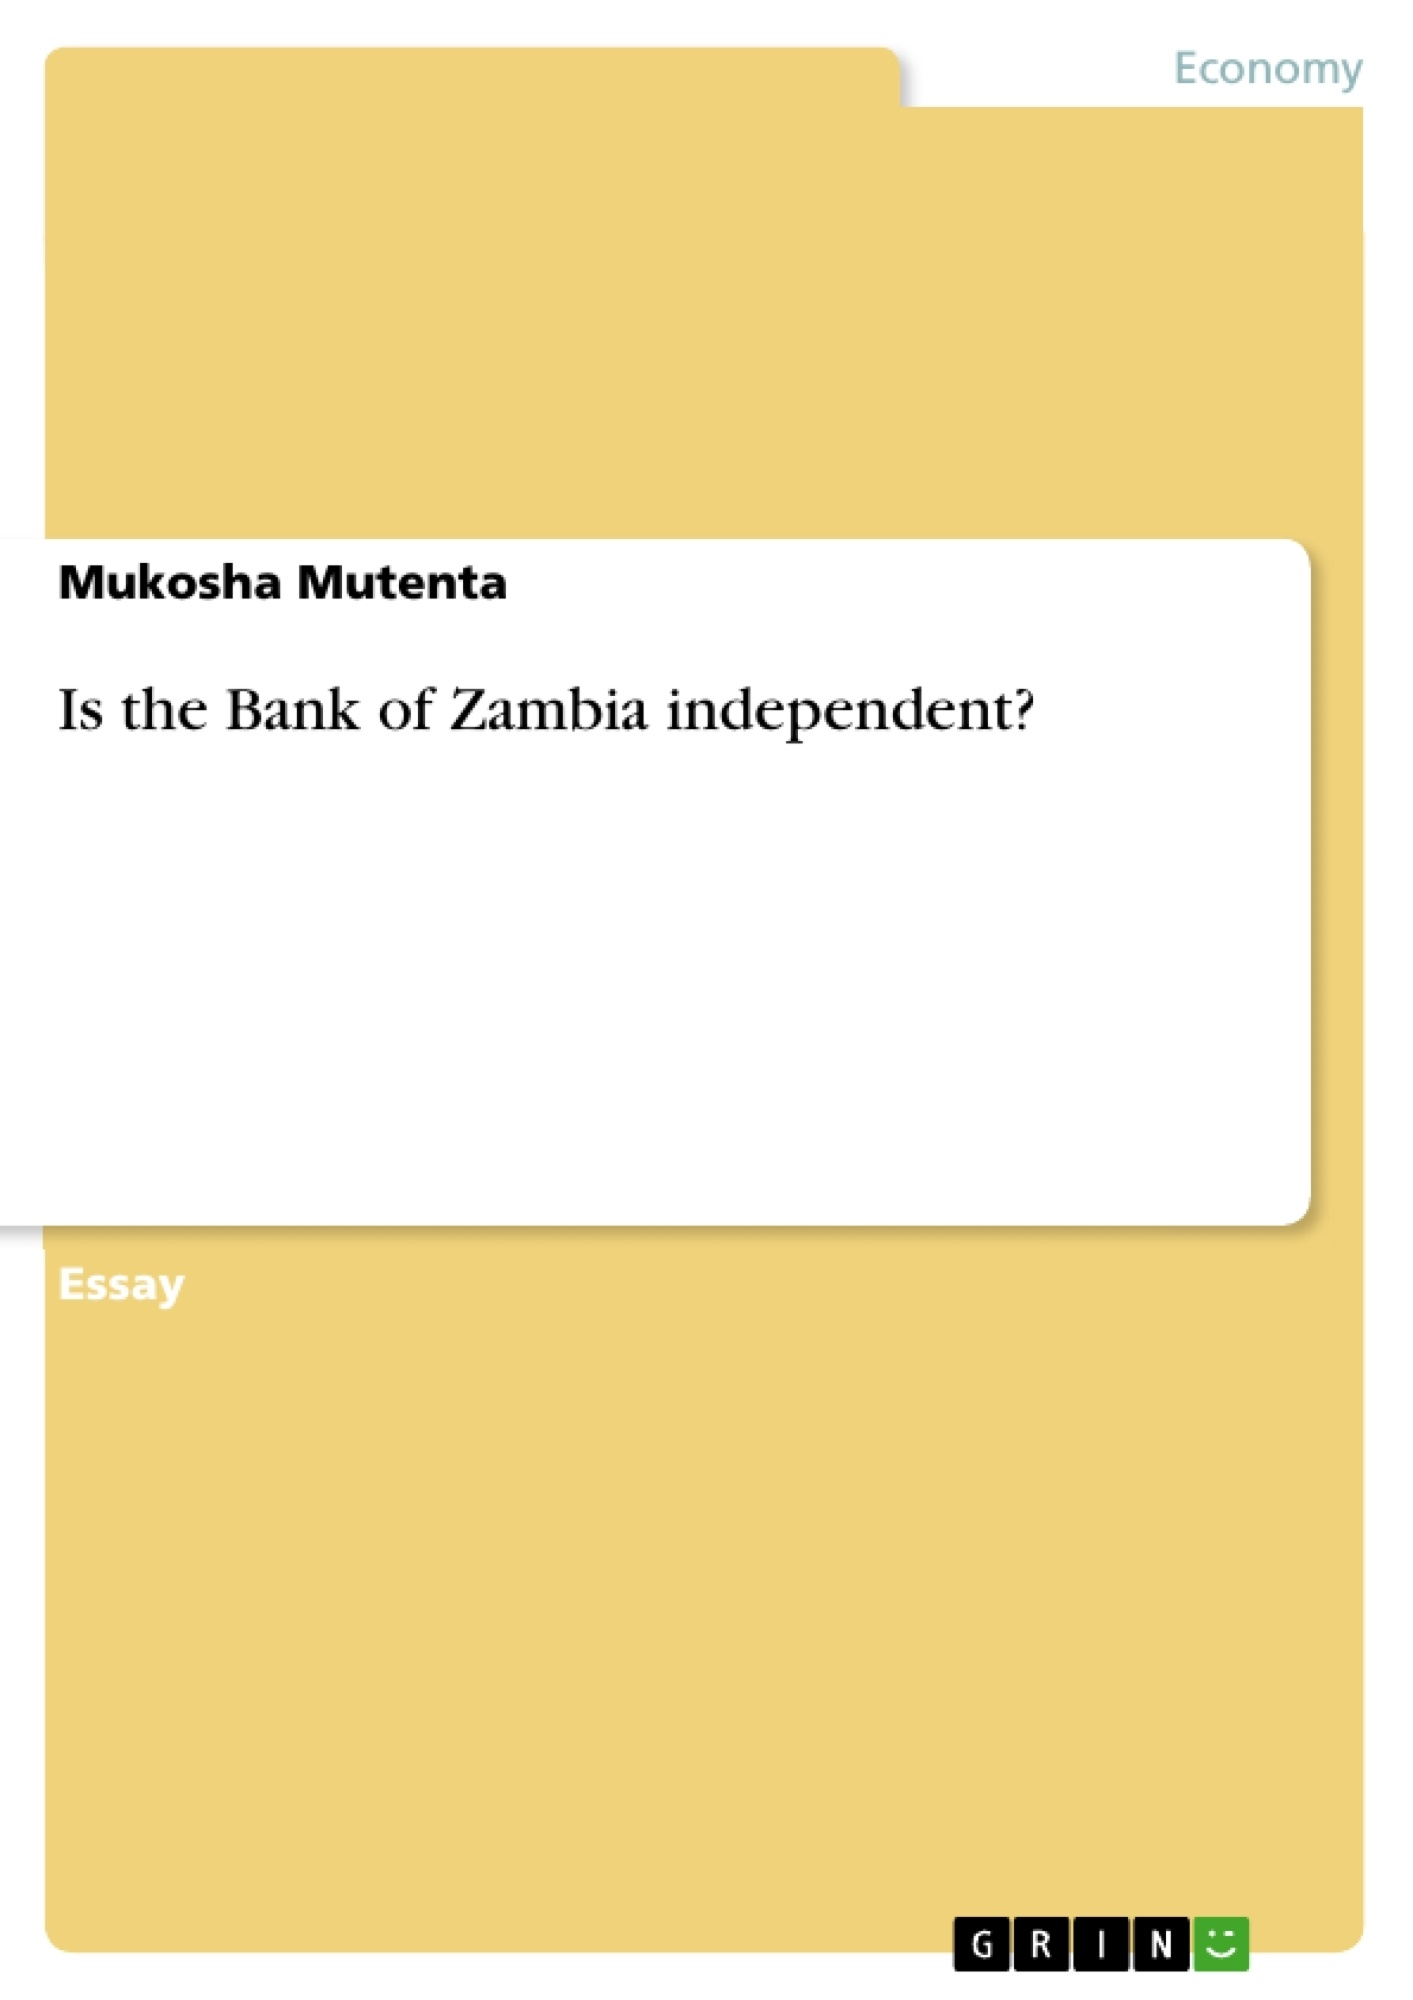 Title: Is the Bank of Zambia independent?